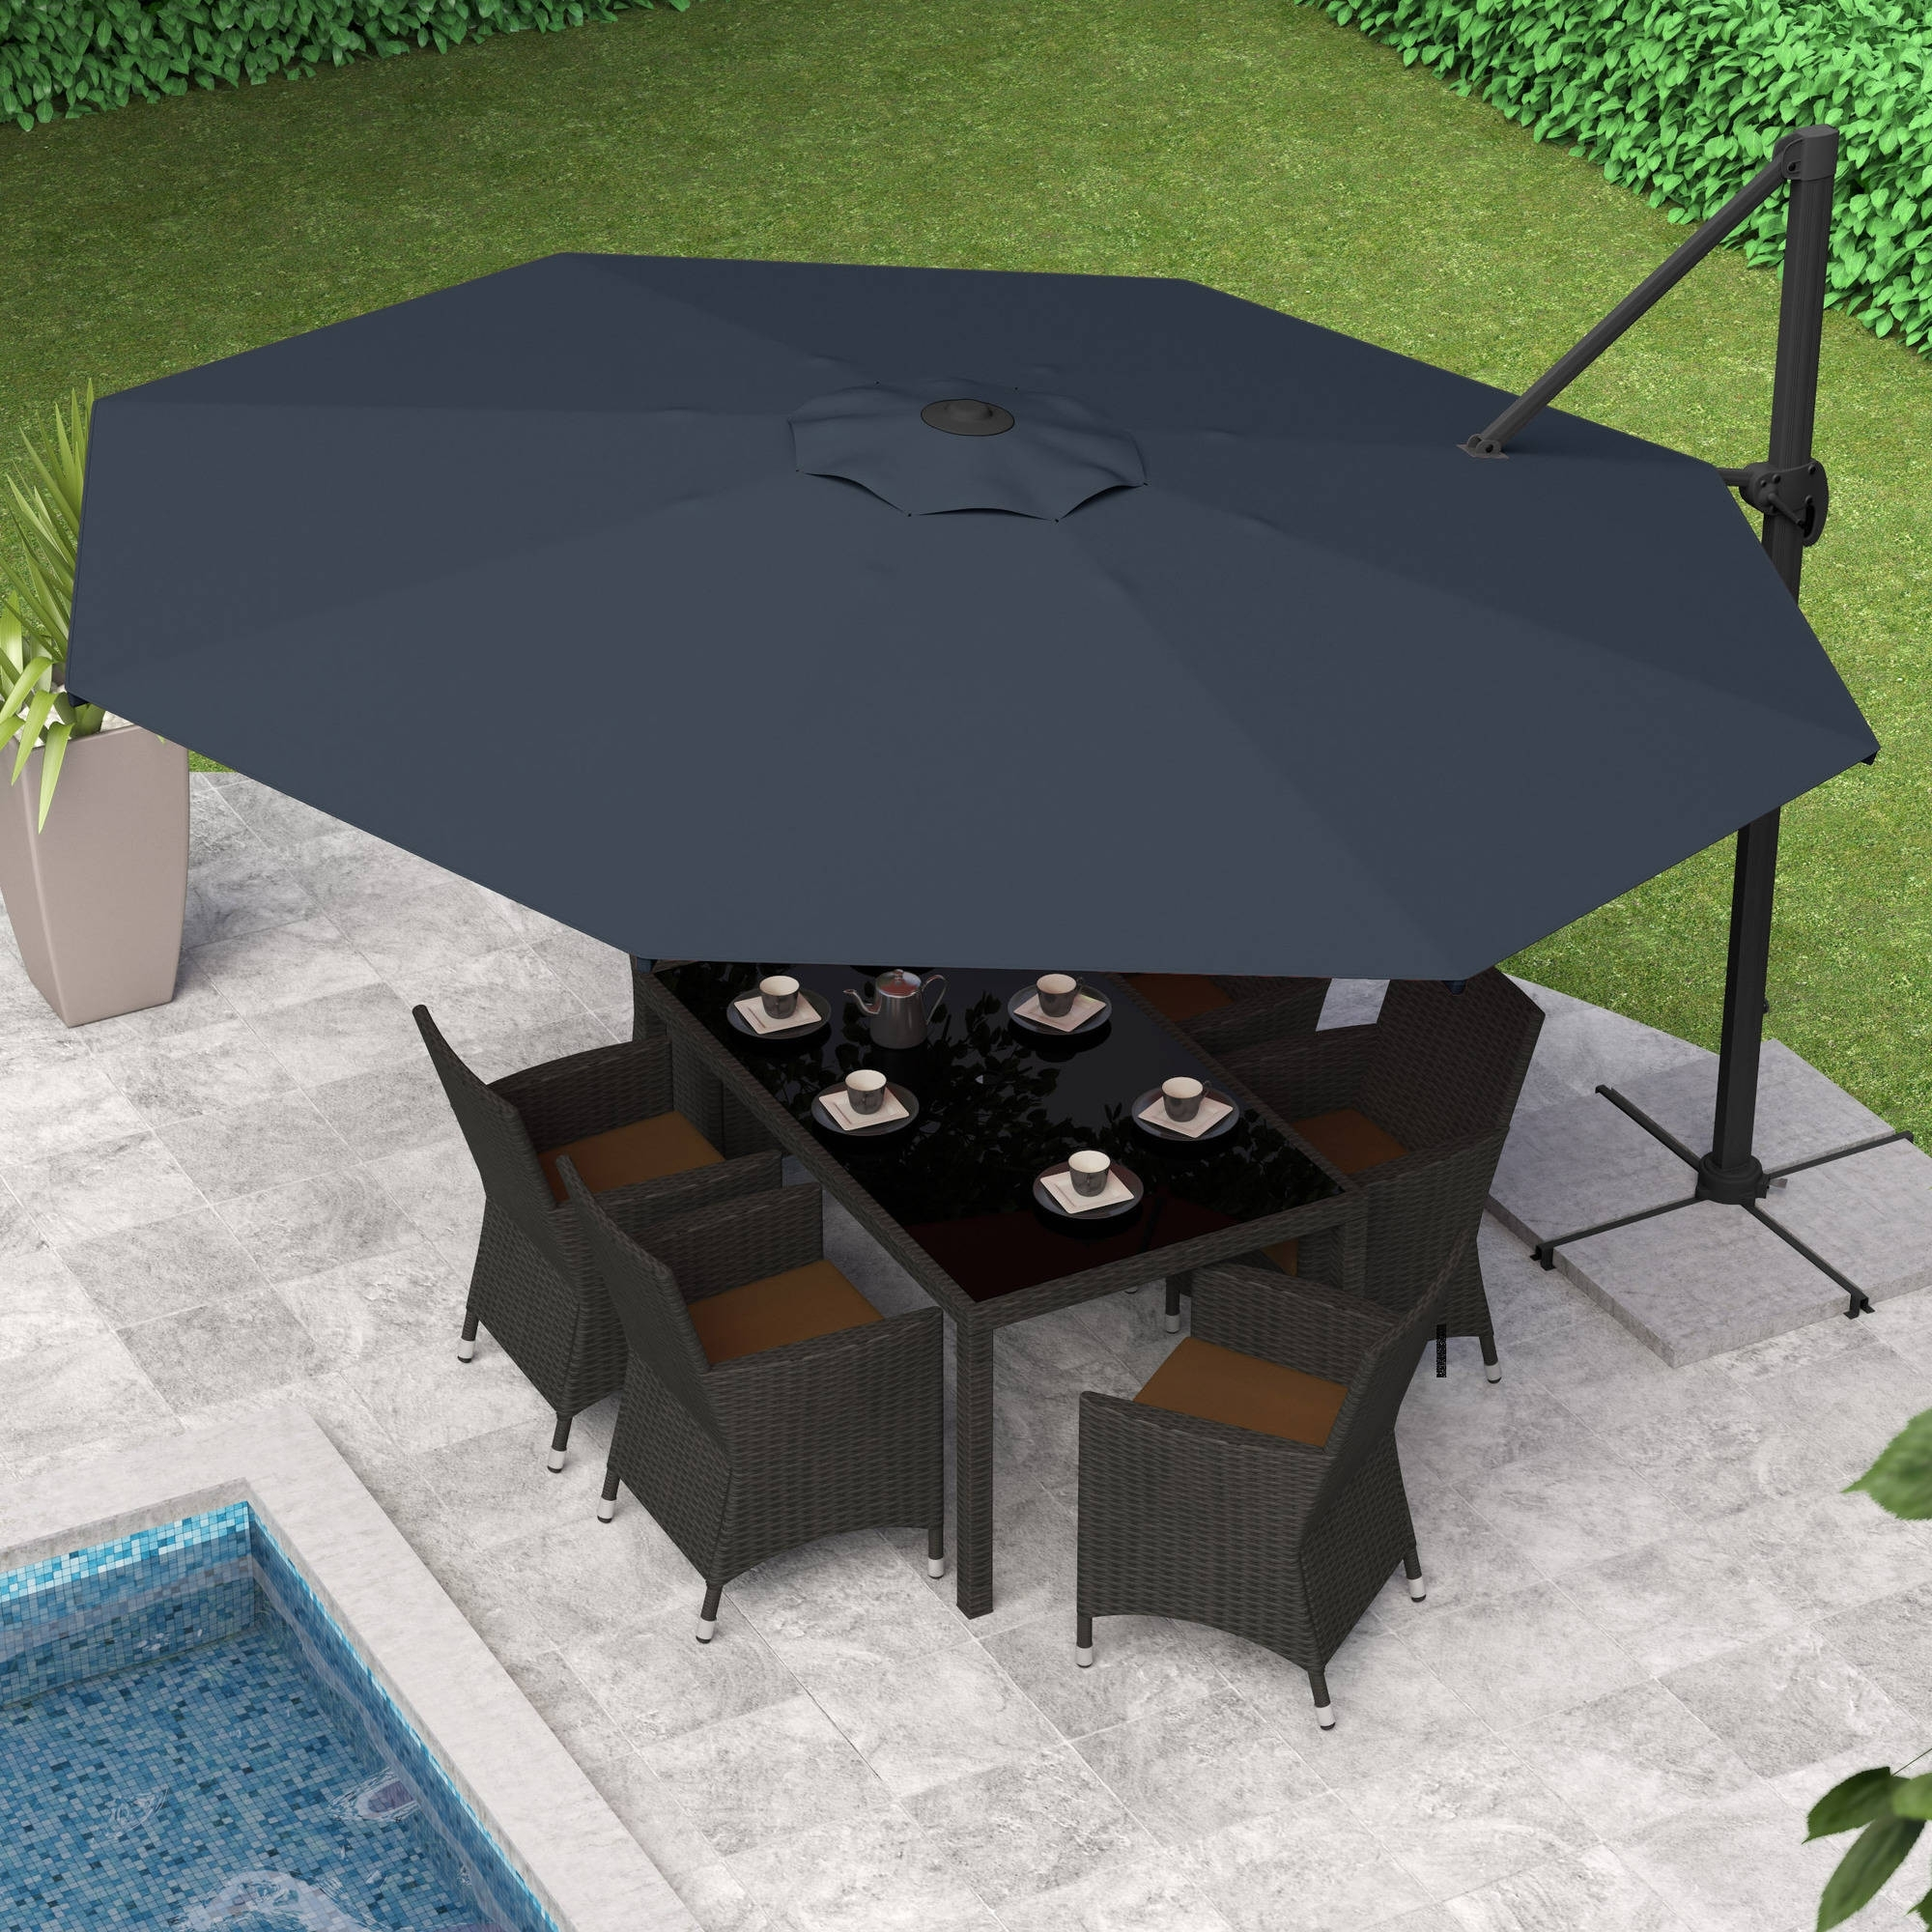 17 New Wayfair Patio Furniture Ideas Of Wayfair Outdoor Furniture Sale With Favorite Wayfair Patio Umbrellas (View 1 of 20)